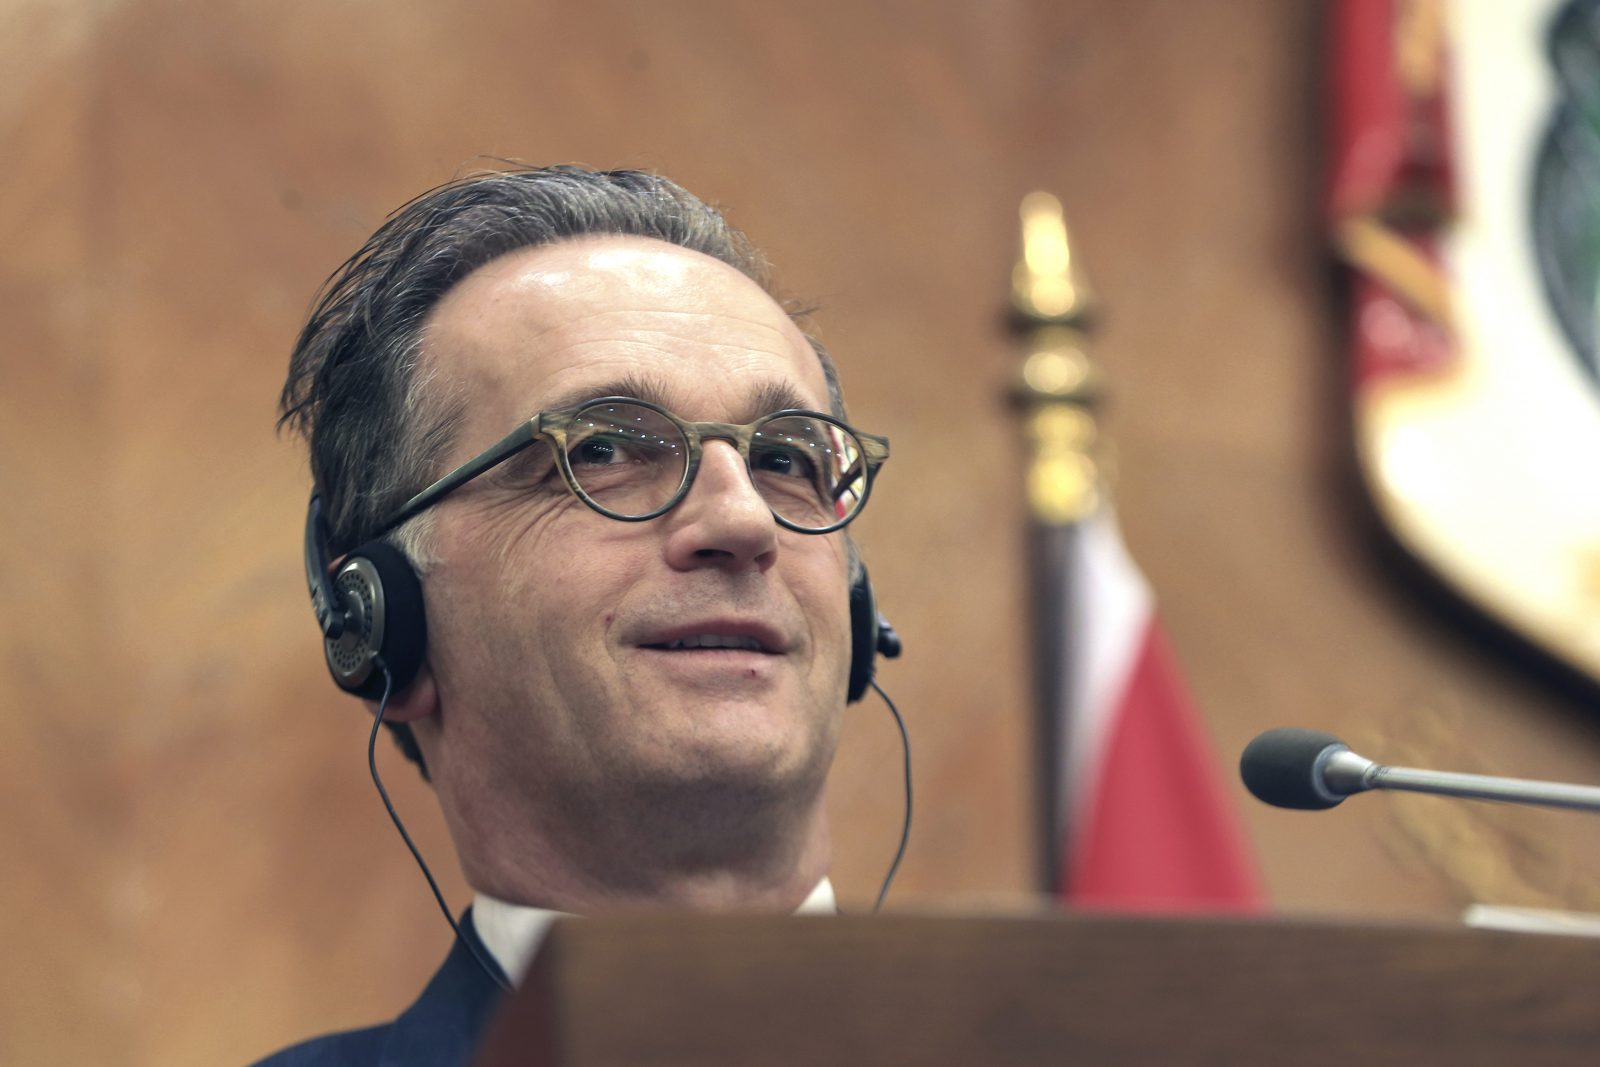 Bundesaußenminister Heiko Maas (SPD) will anderen zeigen, wie Demokratie geht Foto: picture alliance / ASSOCIATED PRESS | Raad Adayleh